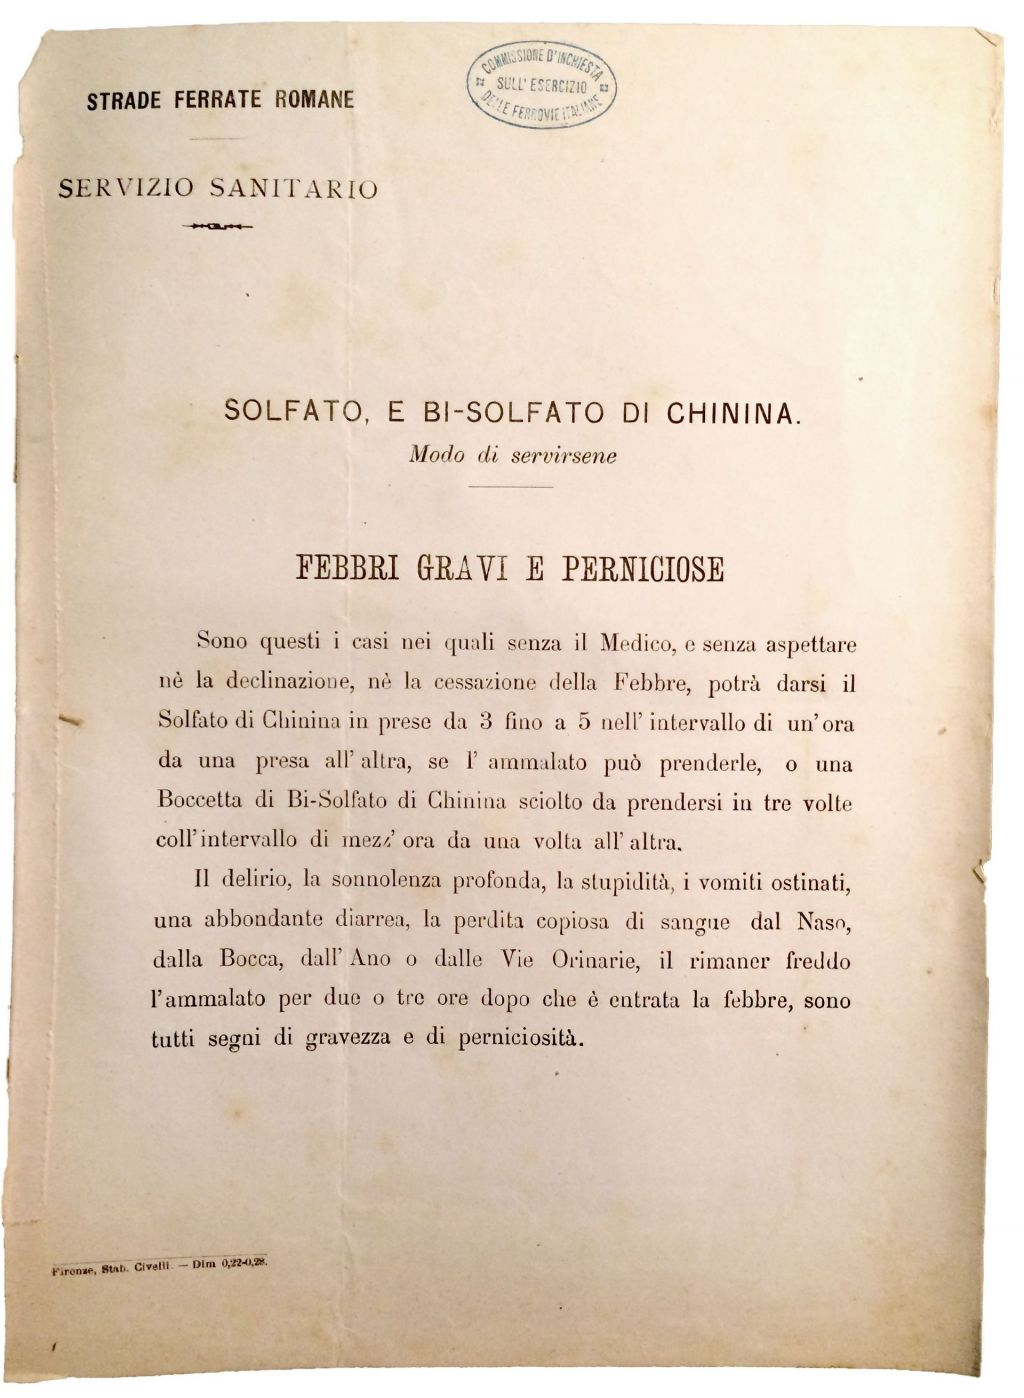 Instructions for the treatment of acute malaria using quinine by the Roman Railways Health Services. Quinine was distributed to all their employees in 1879, a measure which was later implemented across Italy. Archivio Storico del Senato, Rome